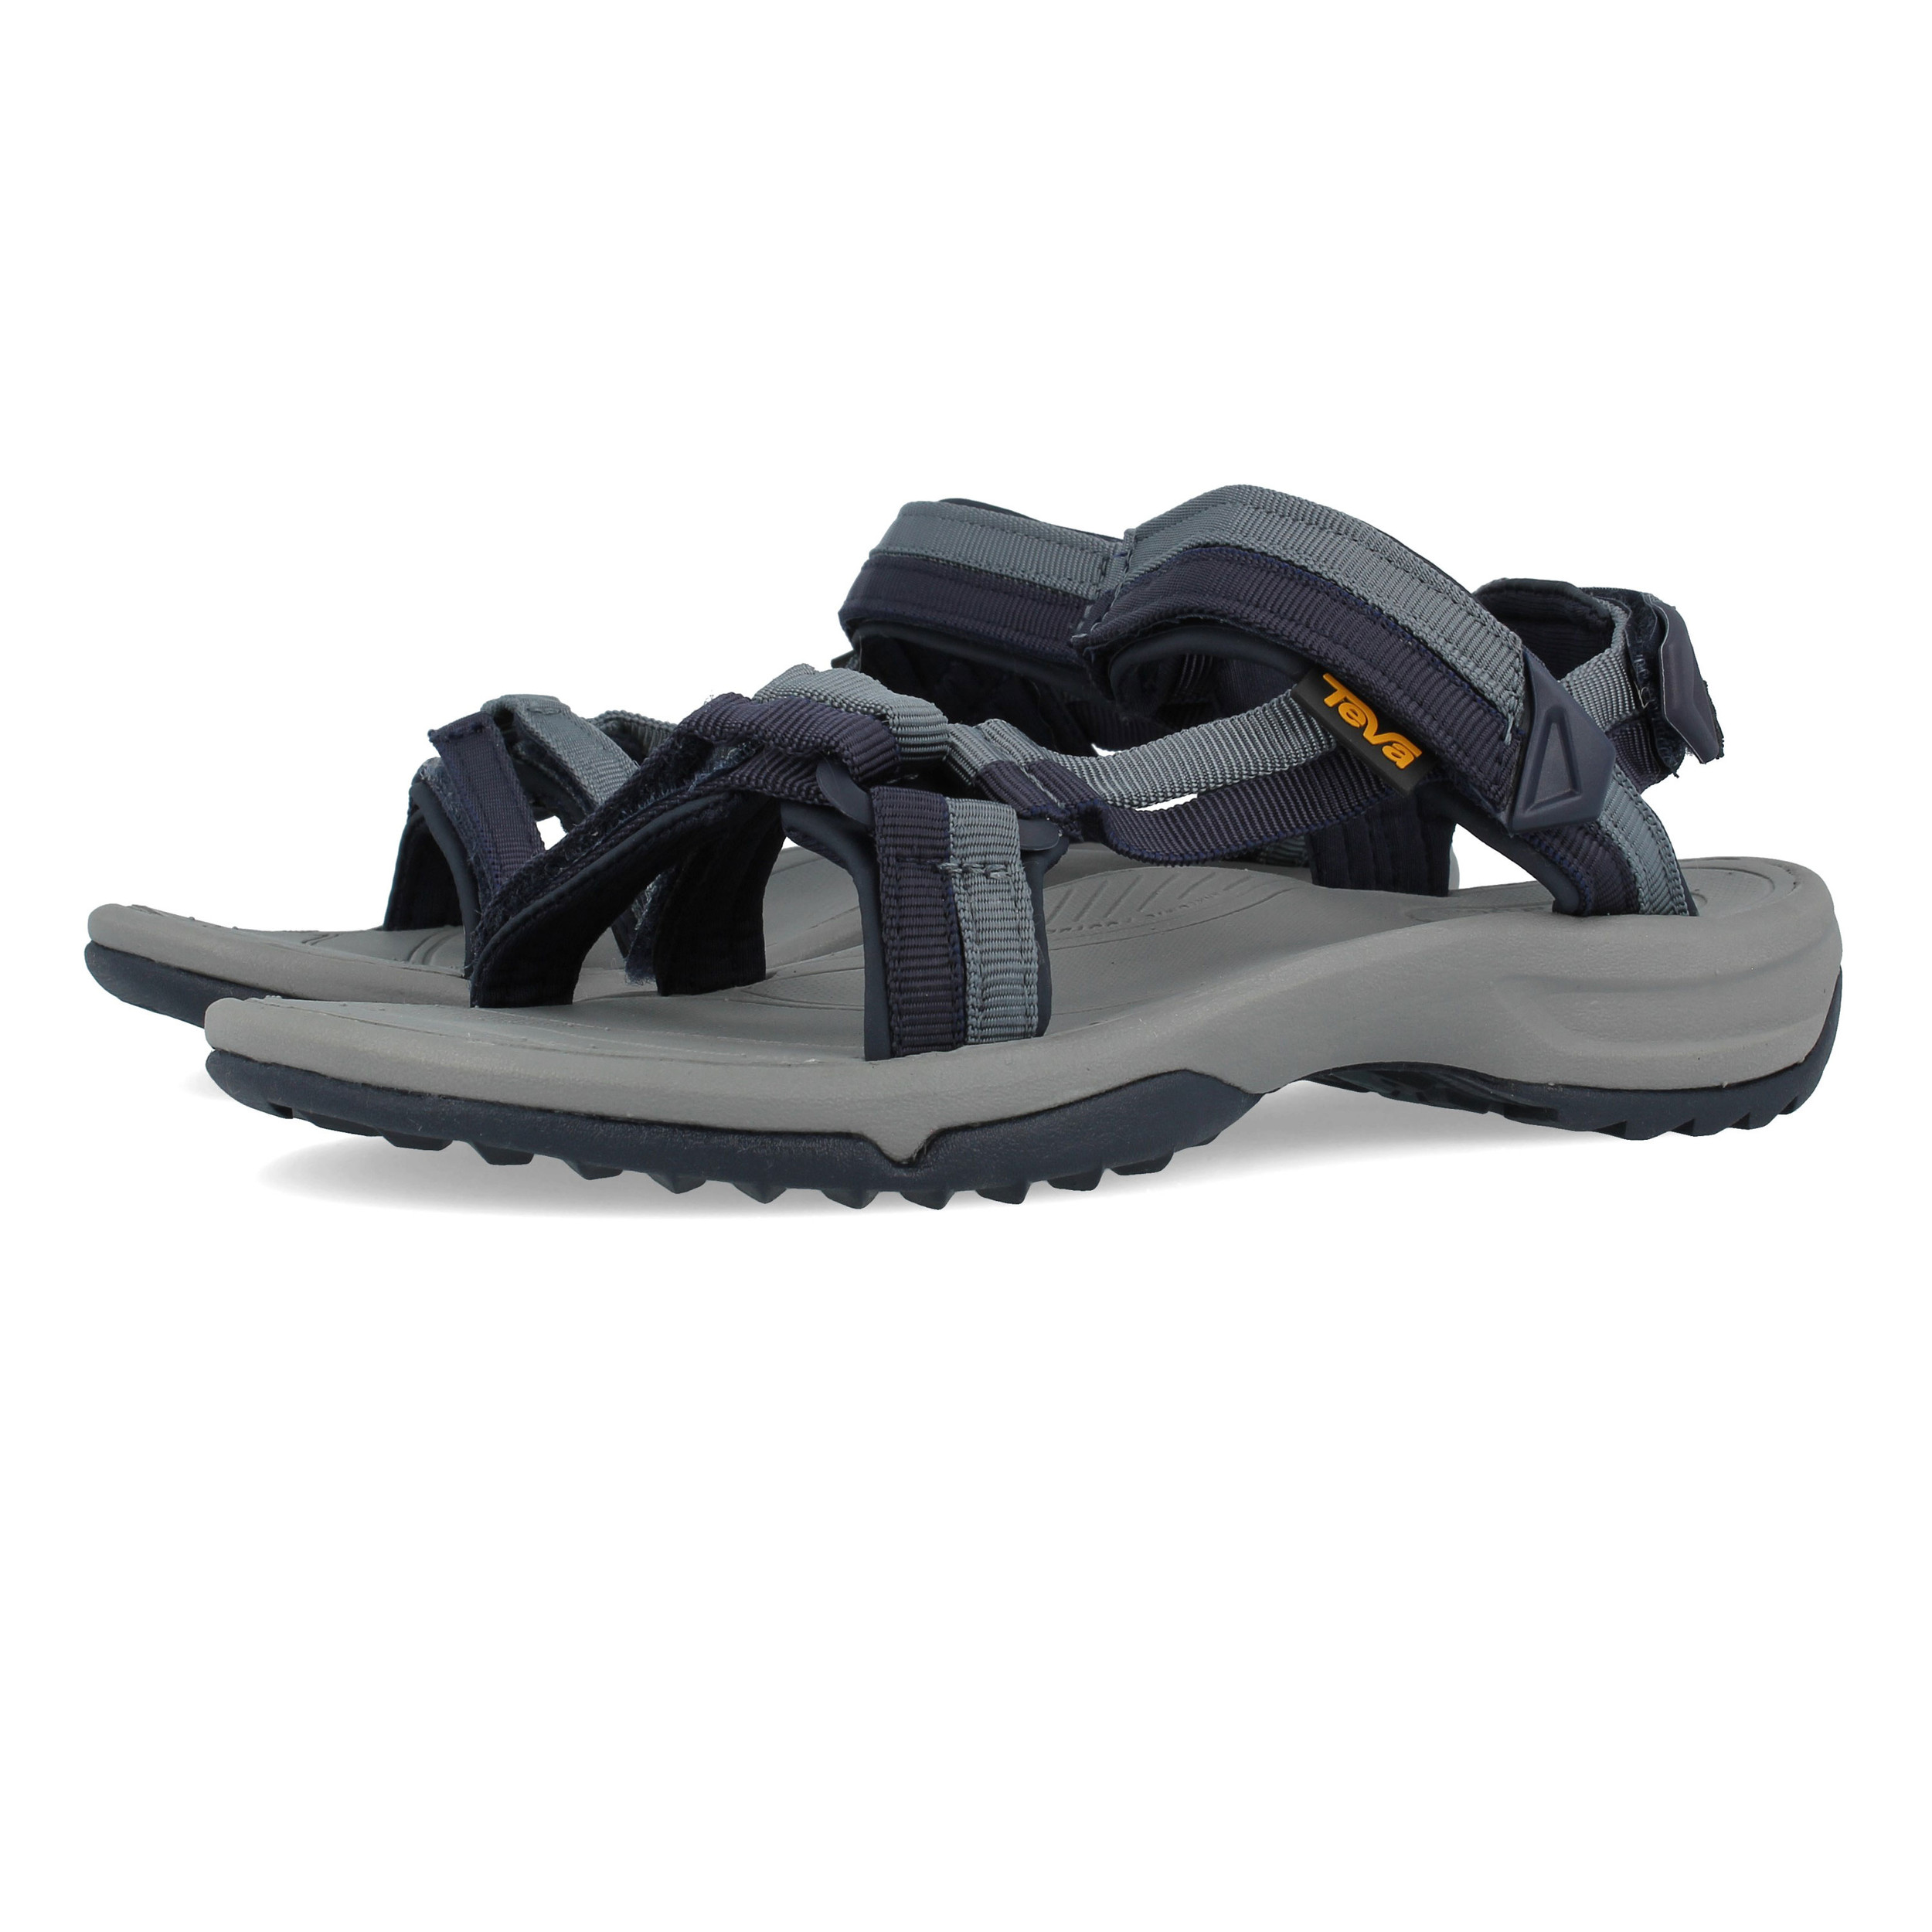 085b0b4bbcfbcb Details about Teva Womens Terra FI Lite Walking Shoes Sandals Navy Blue  Sports Outdoors